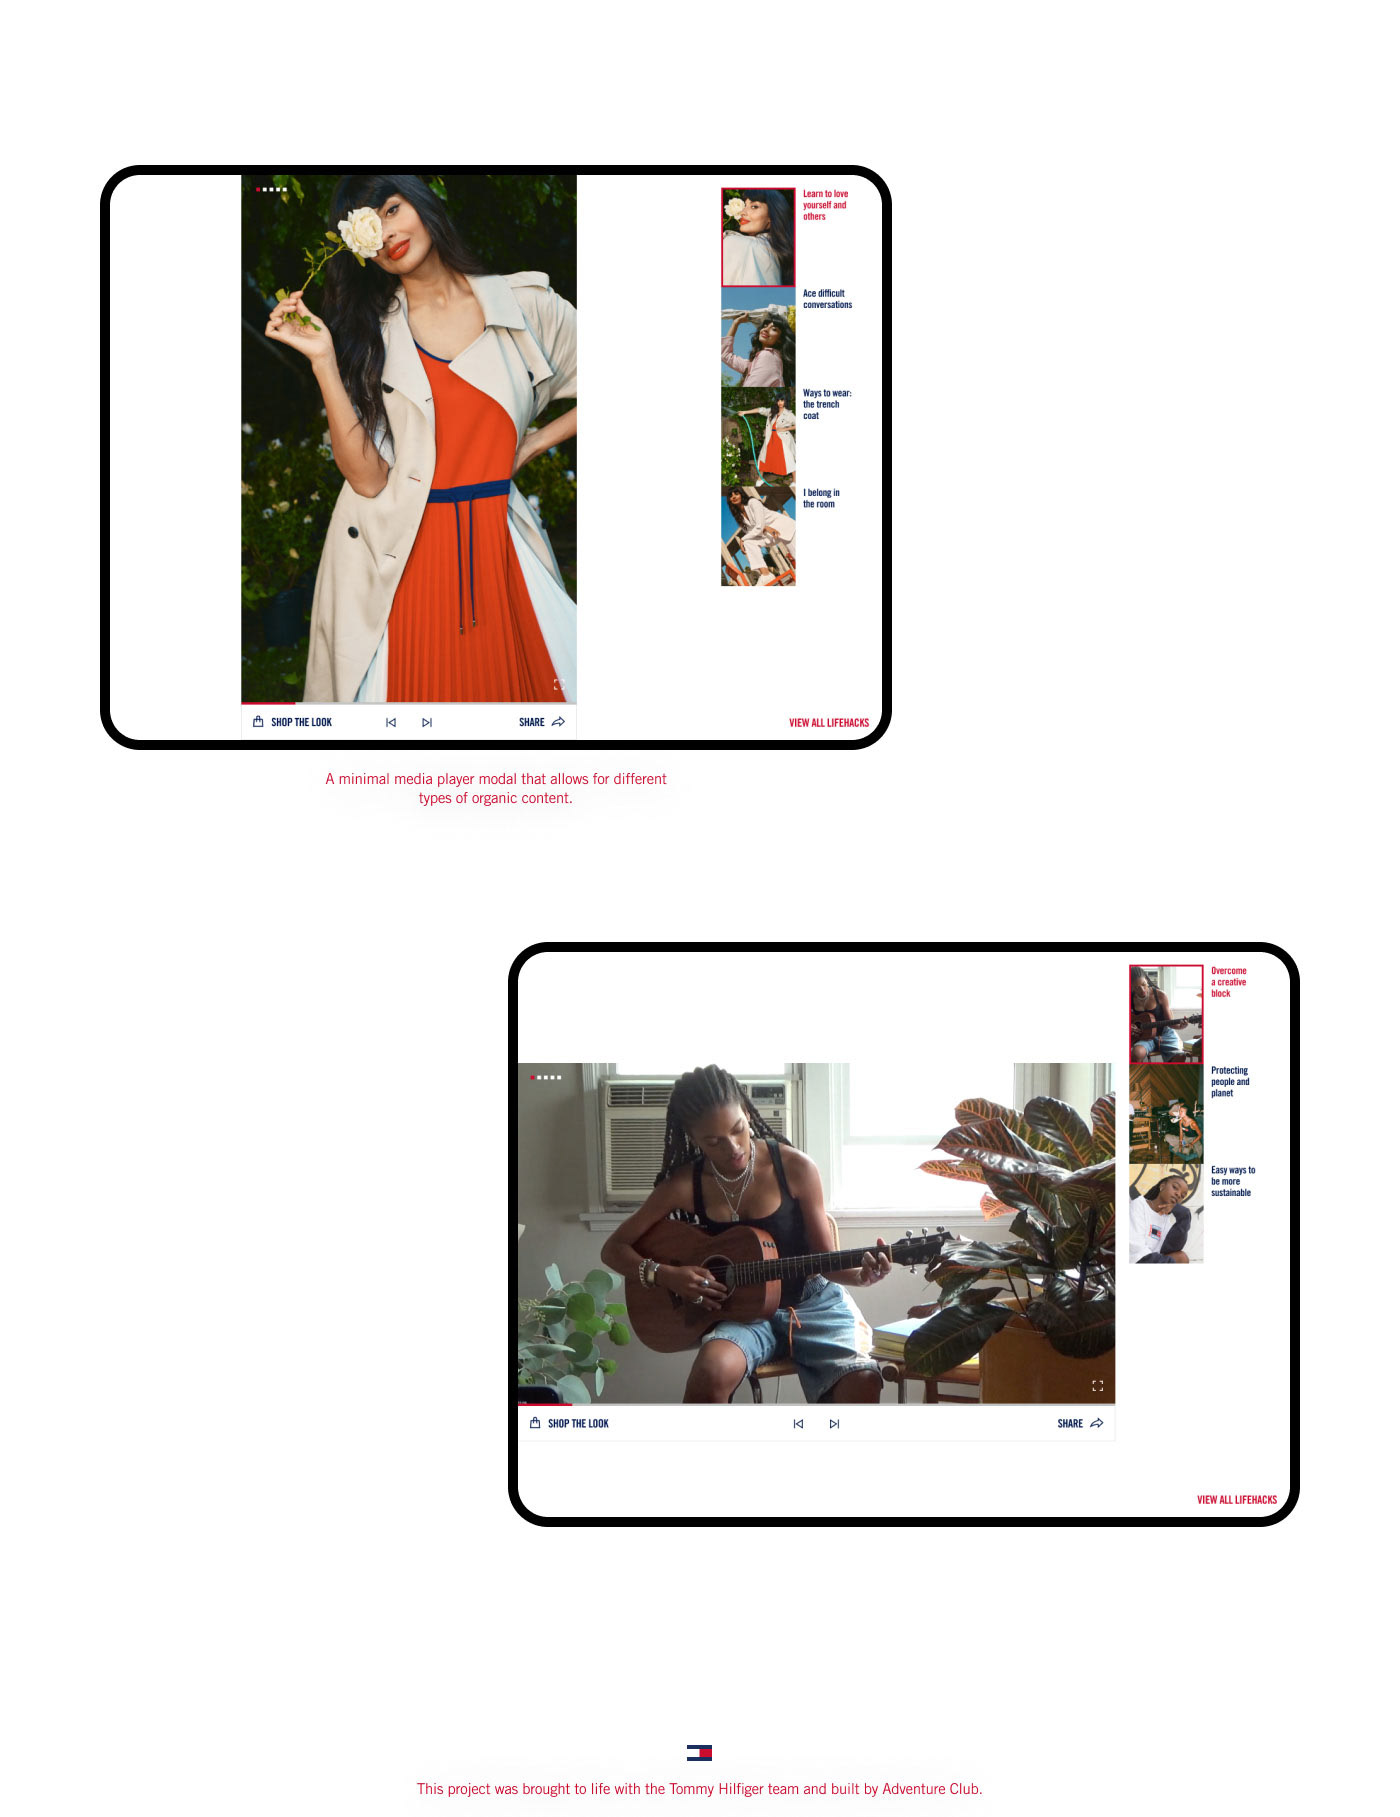 Video player modals, showing how videos fit in both vertical and horizontal sizes. Minimal design